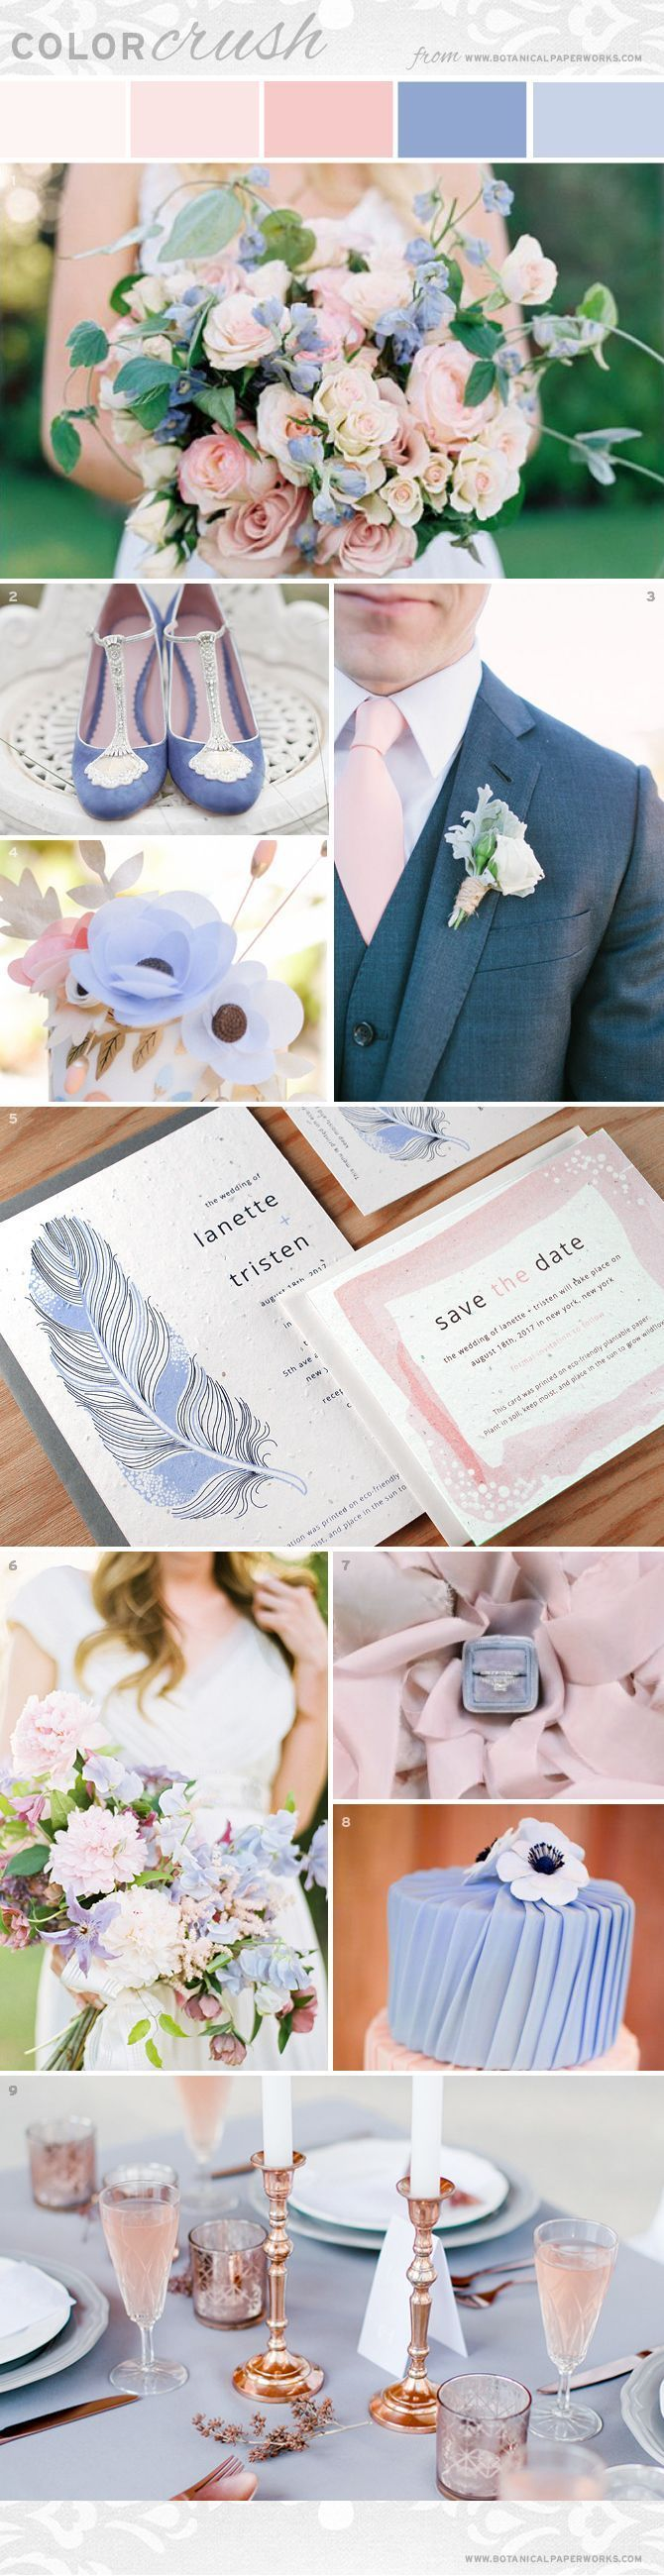 105 best Wedding Themes: Romantic images on Pinterest